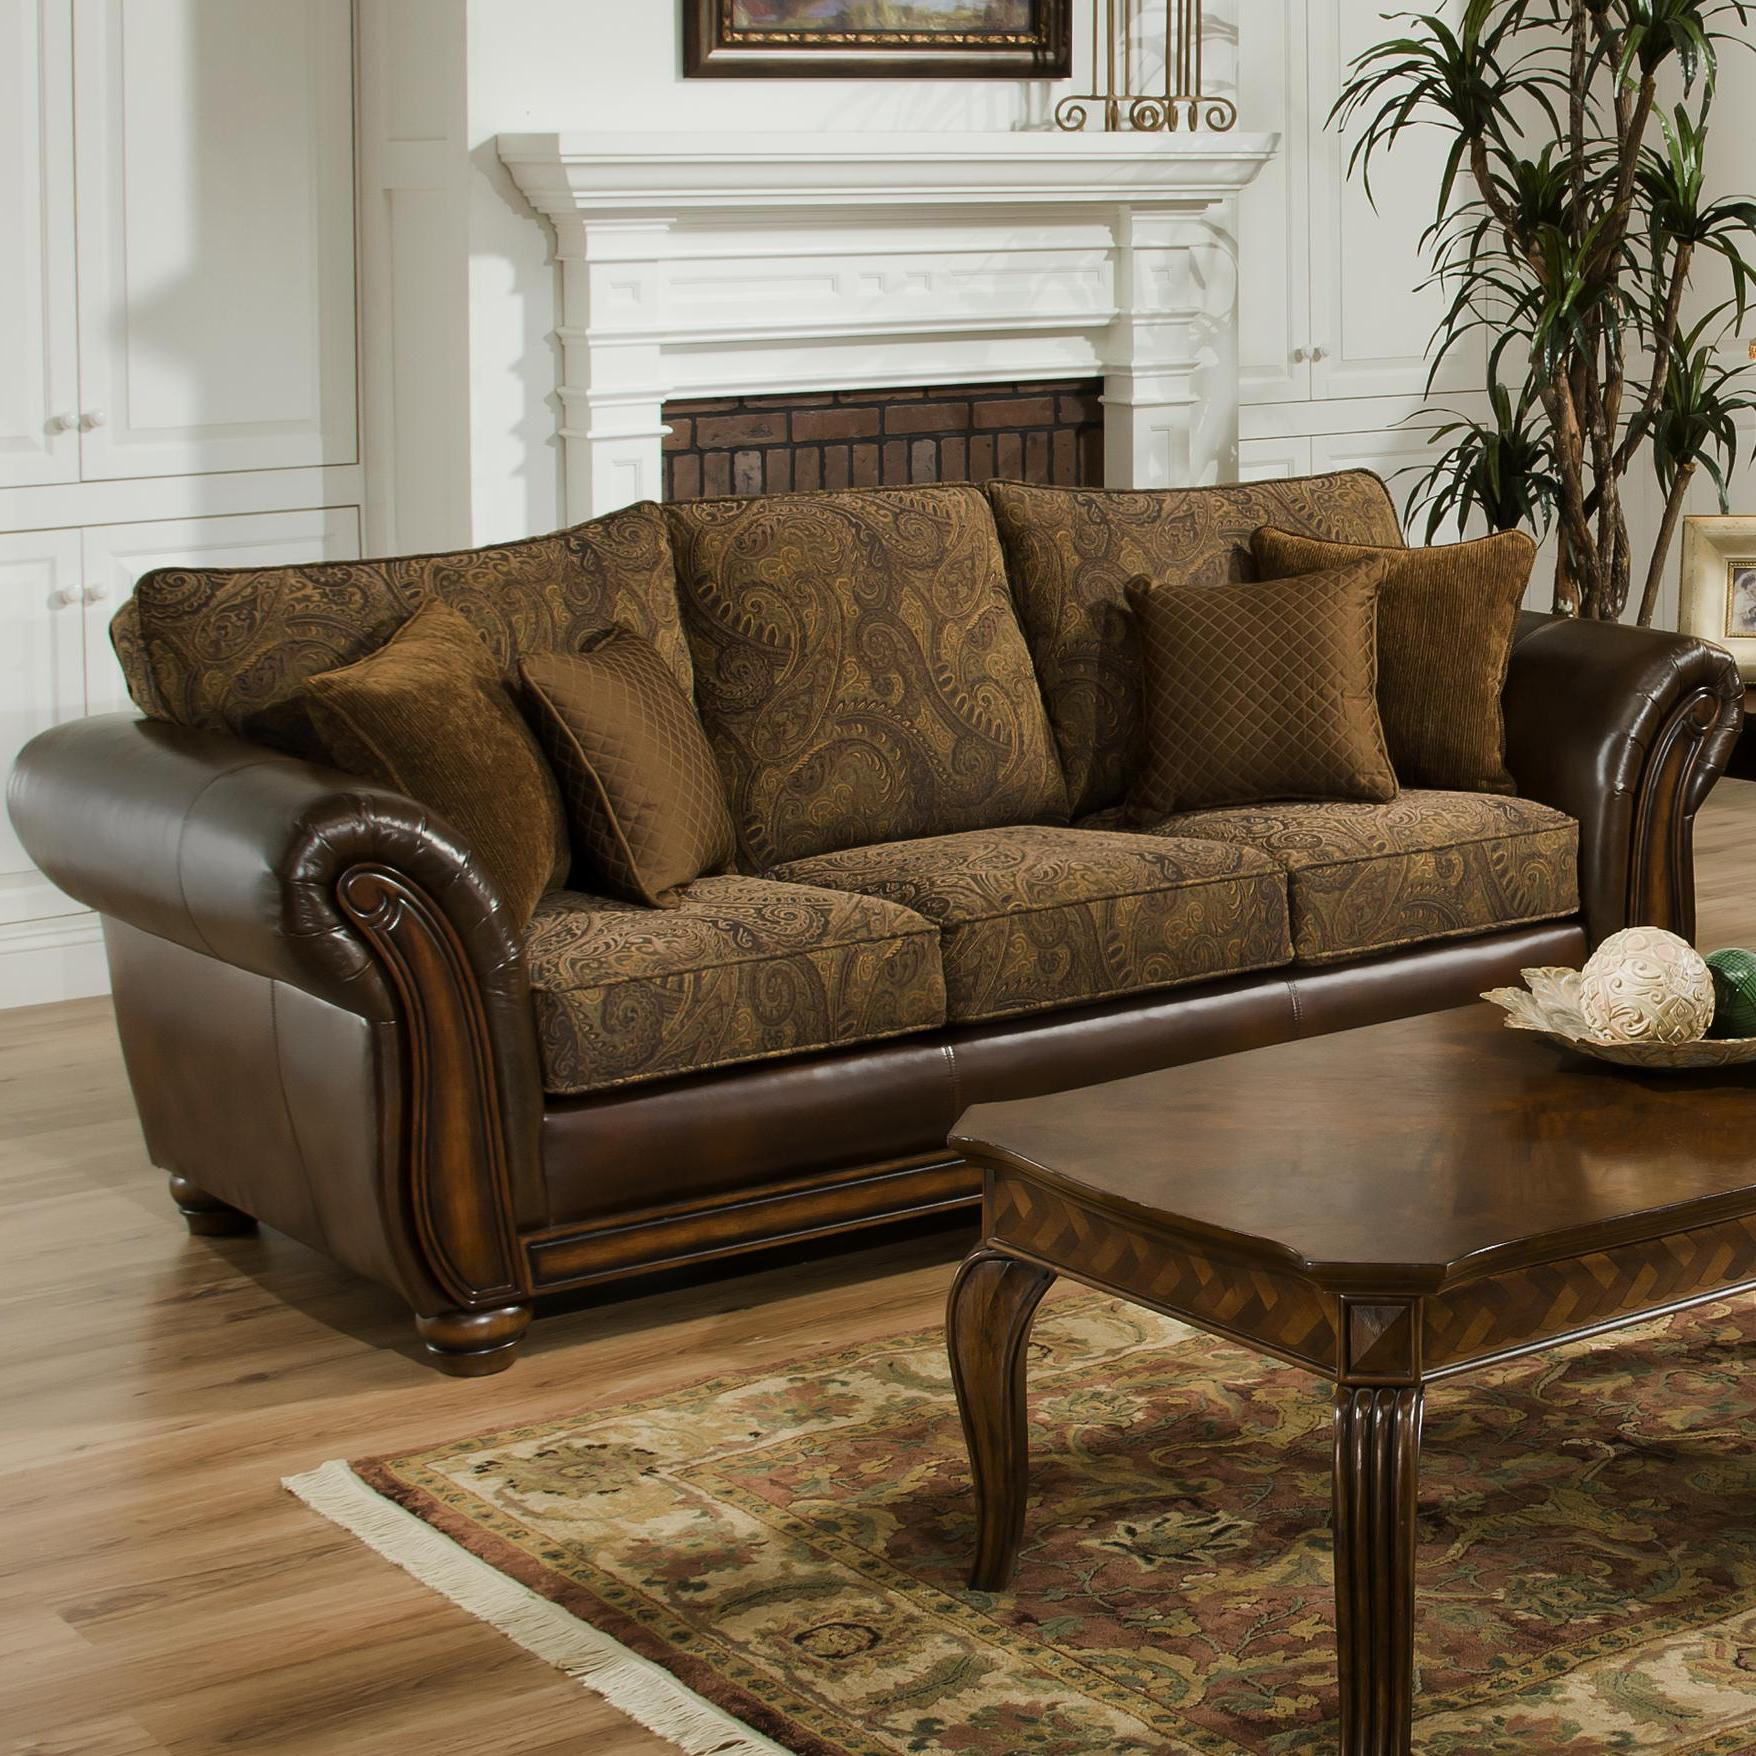 Simmons upholstery 8104 sofa sleeper